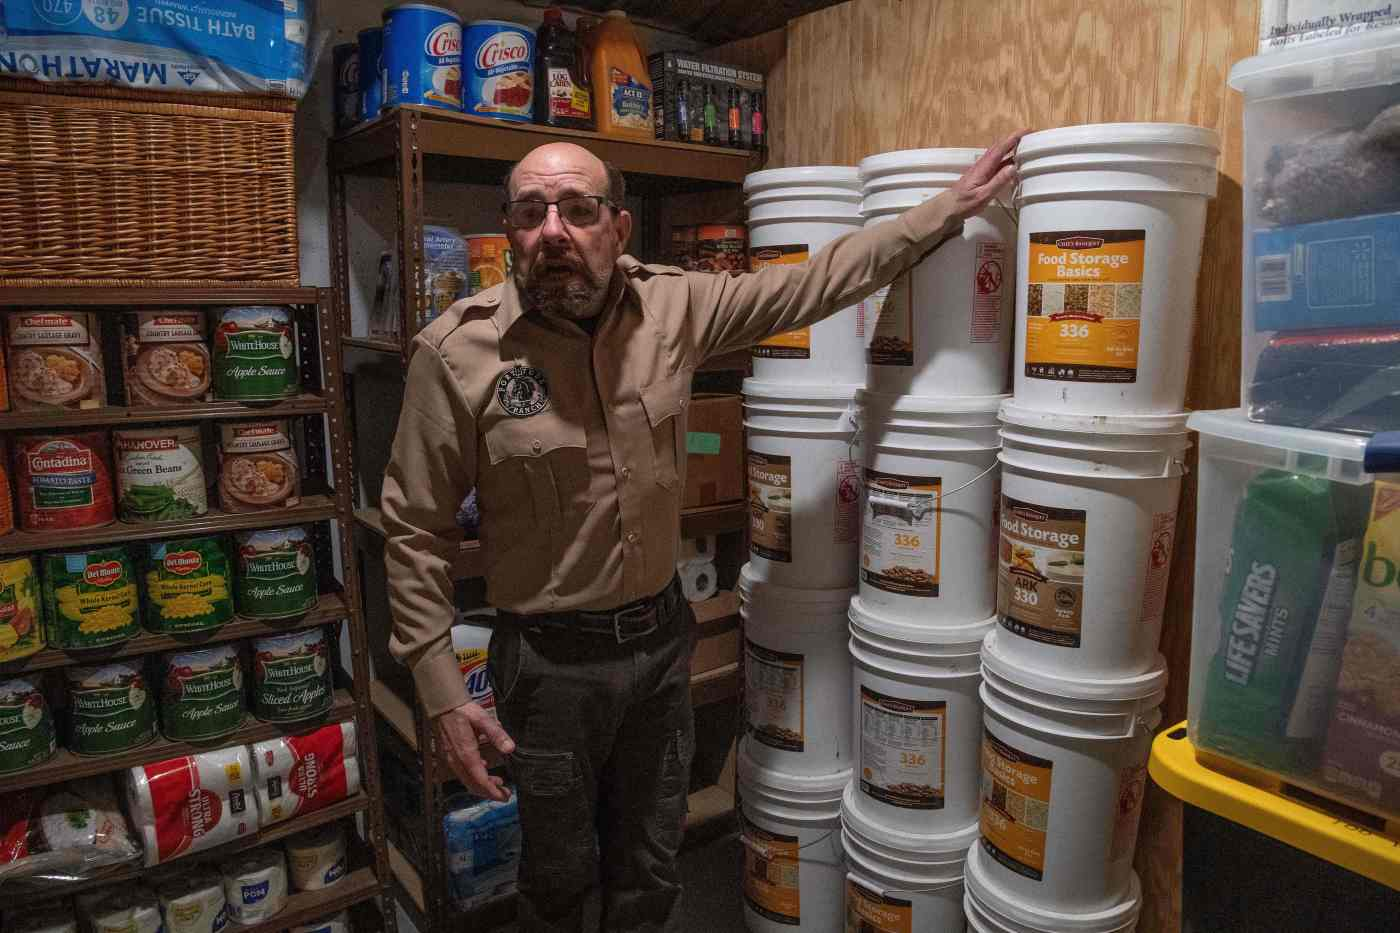 Fortitude Ranch Chief Operating Officer Steve Rene speaks inside a storage room stacked with food in Mathias, West Virginia